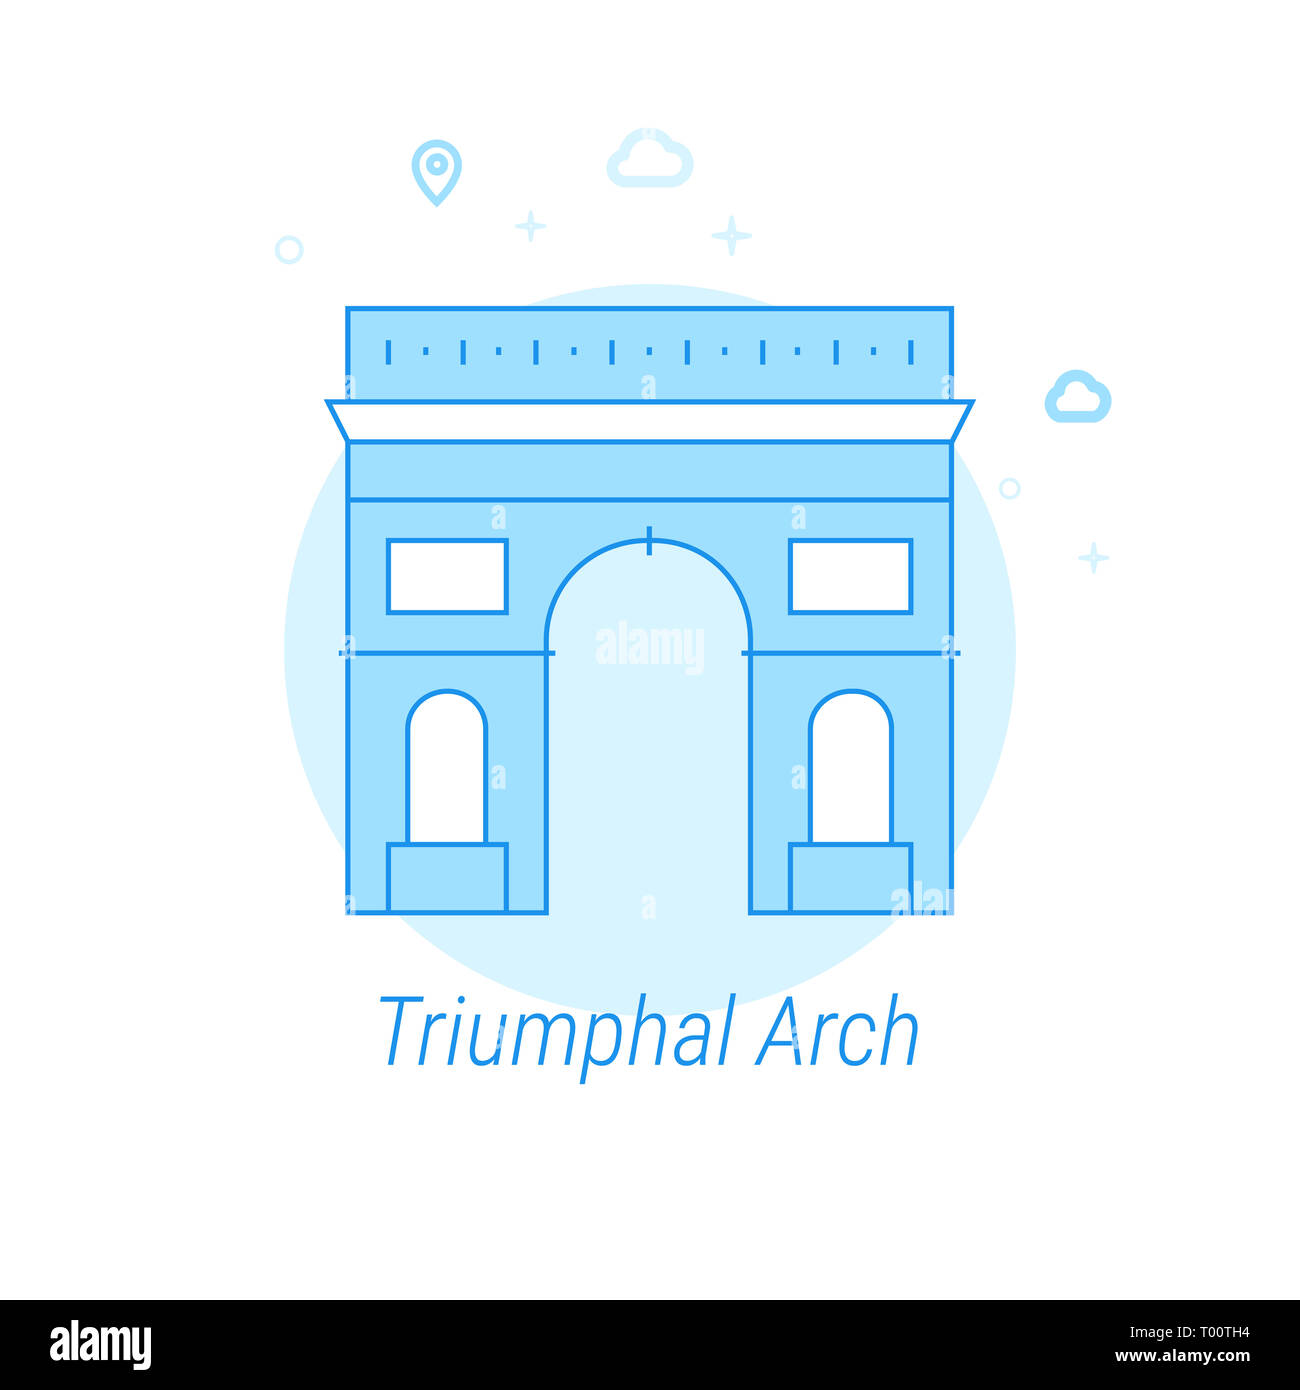 Triumphal Arch, Paris Flat Icon. Historical Landmarks Related Illustration. Light Flat Style. Blue Monochrome Design. Editable Stroke. Adjust Line Wei - Stock Image